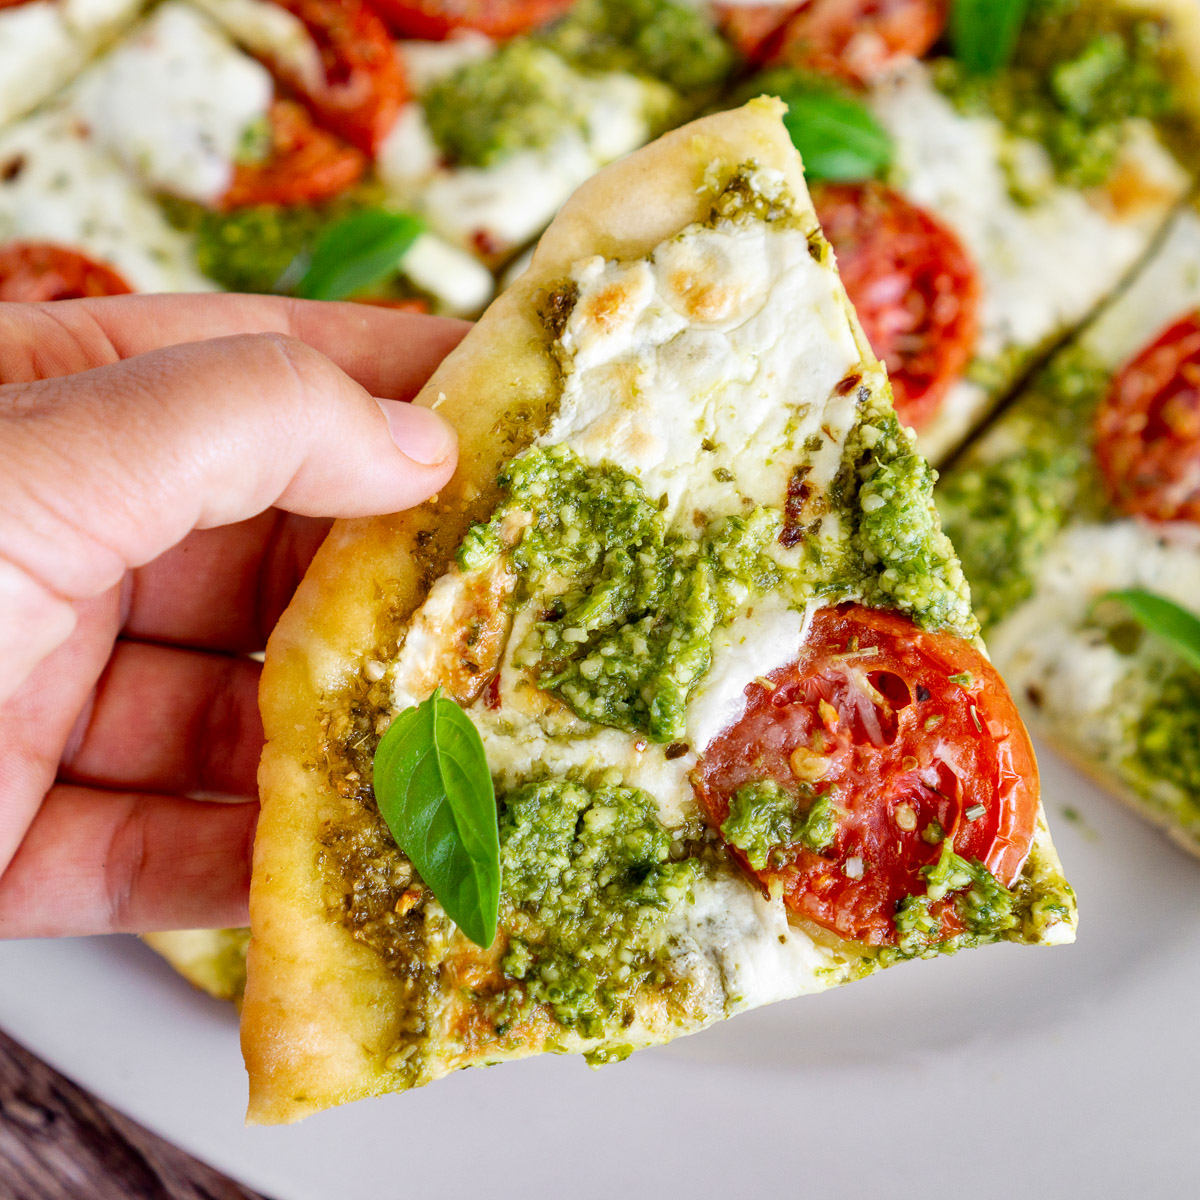 slice of pesto pizza made with 2 ingredient pizza dough